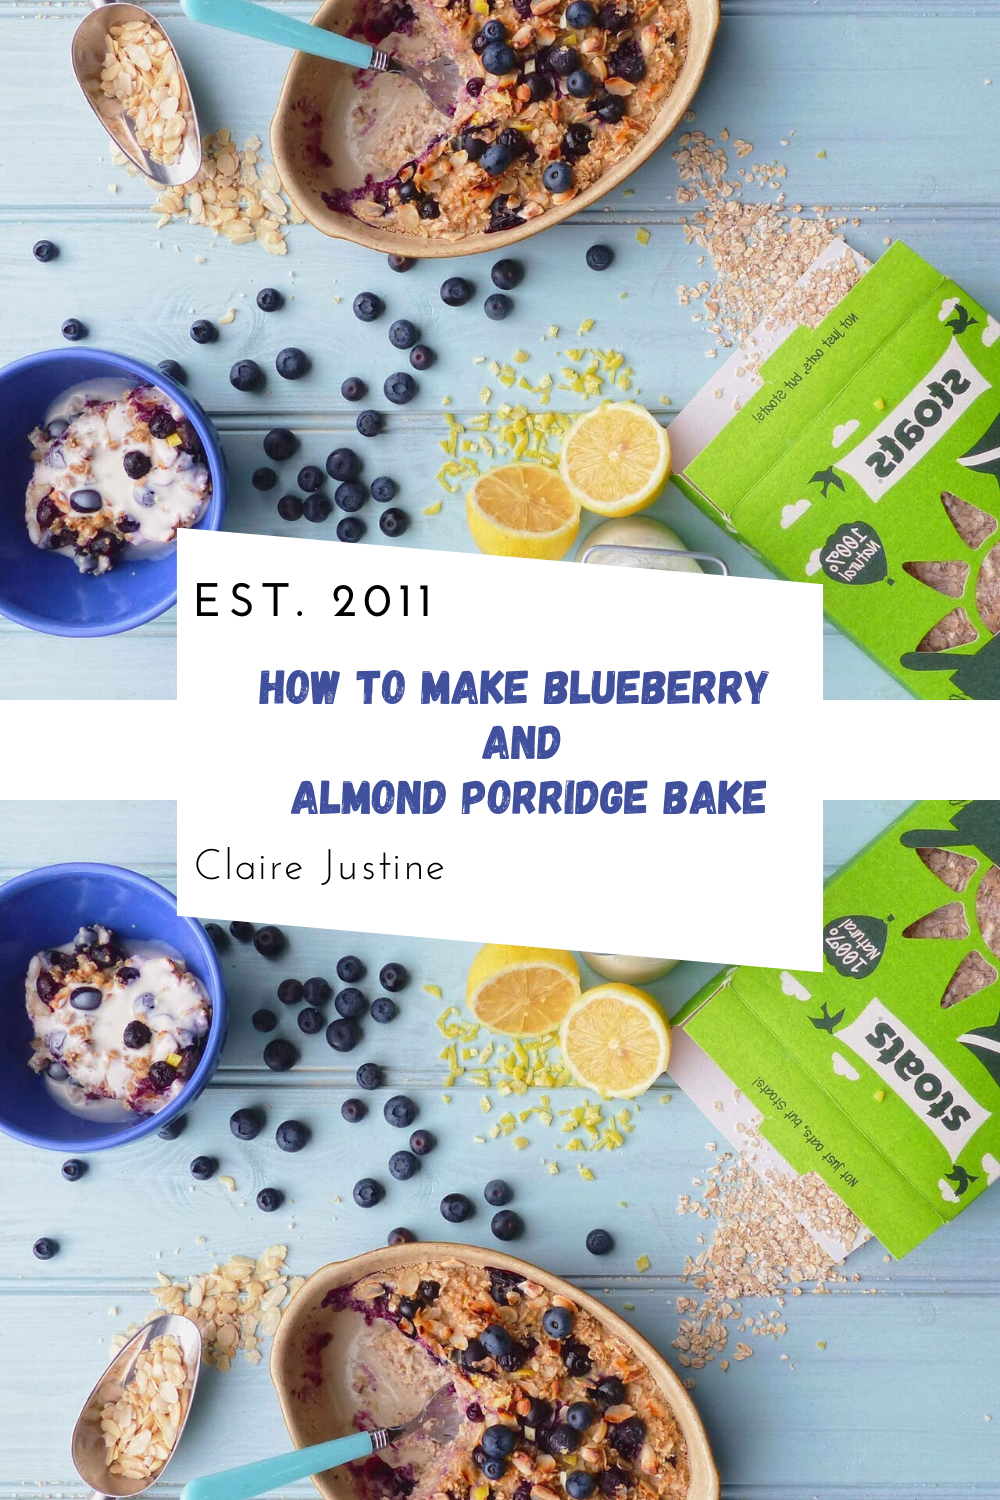 How To Make Blueberry And Almond Porridge Bake.